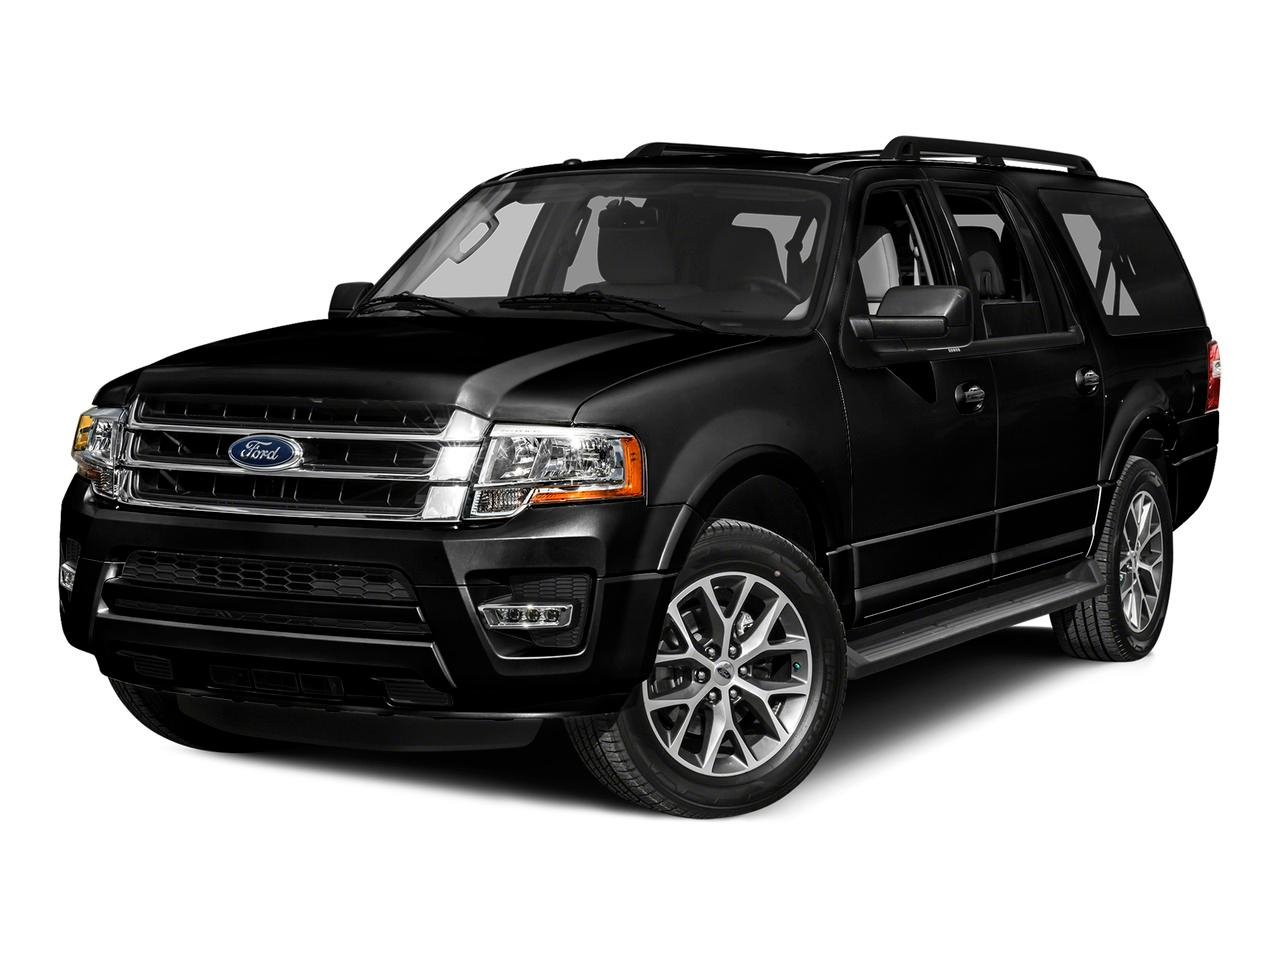 Used 2015 Ford Expedition XLT with VIN 1FMJK1JT9FEF48096 for sale in Alexandria, Minnesota